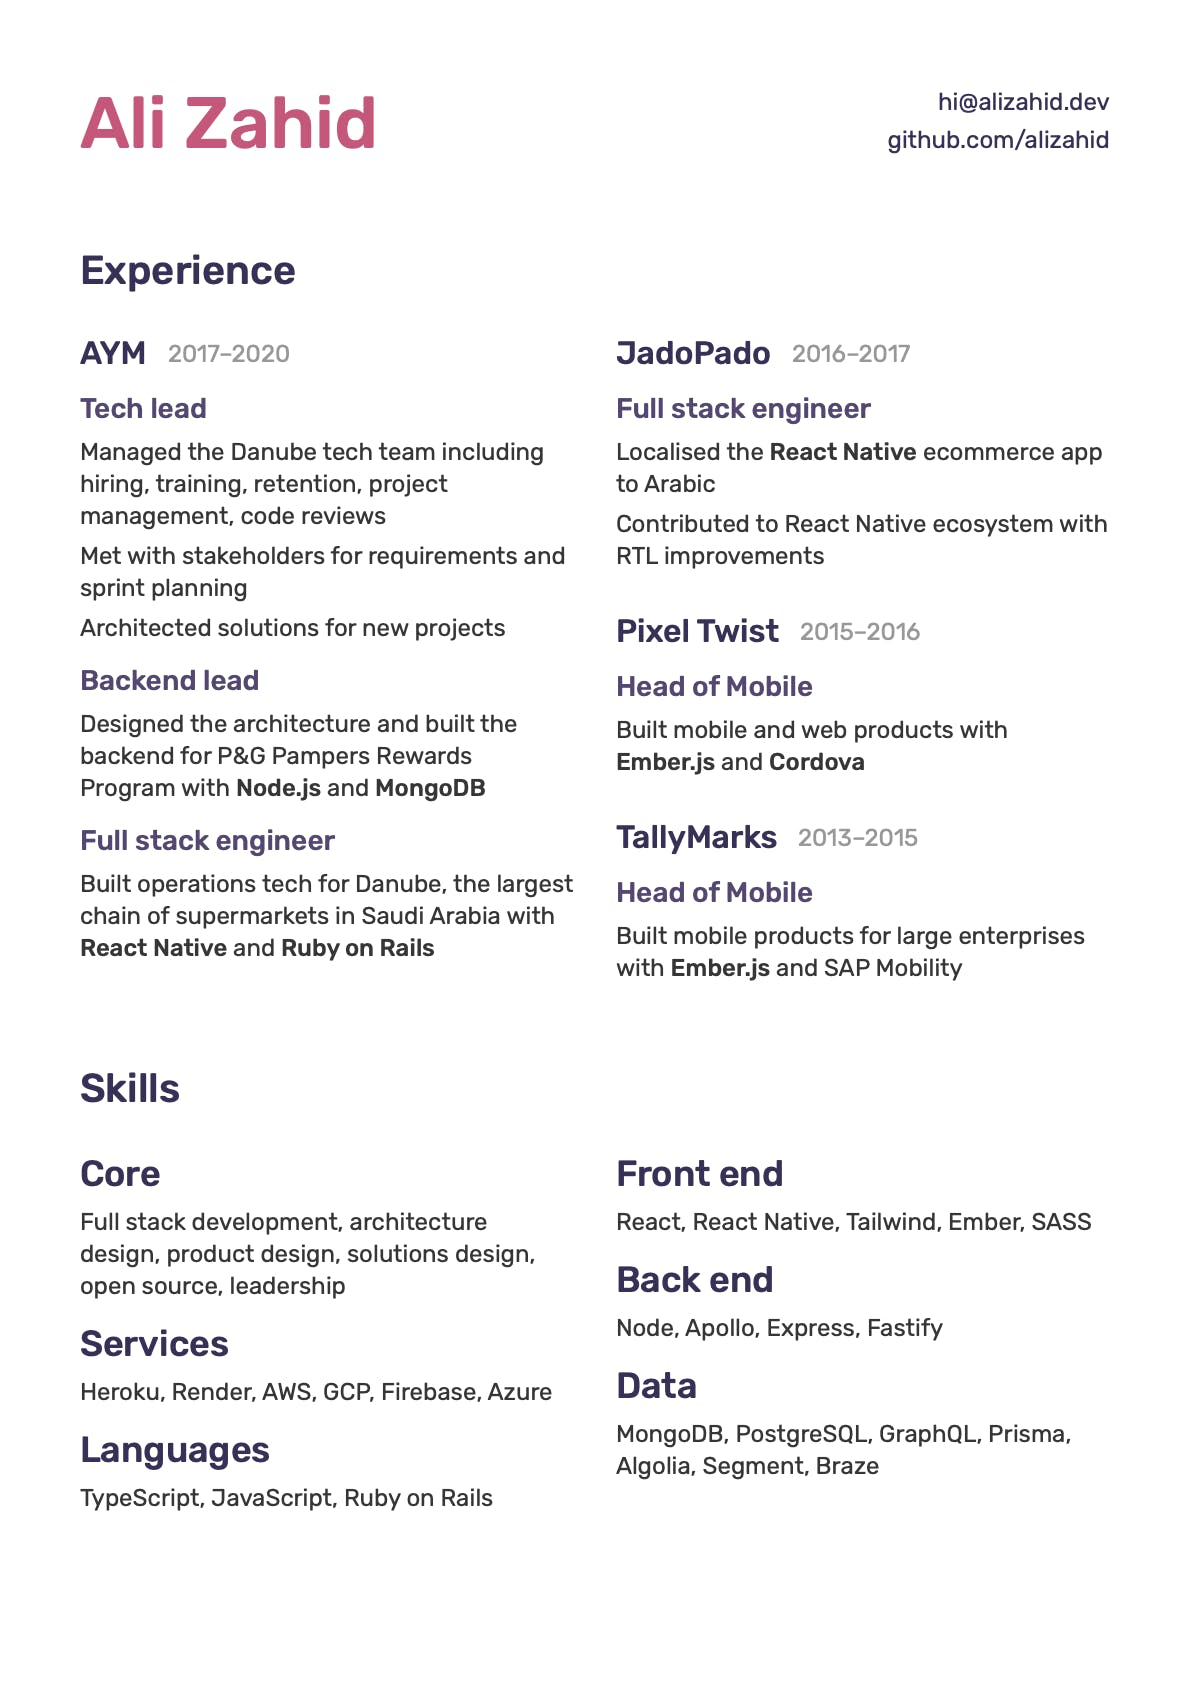 2020 version of resume of Ali Zahid, creator of Resume 5.0.